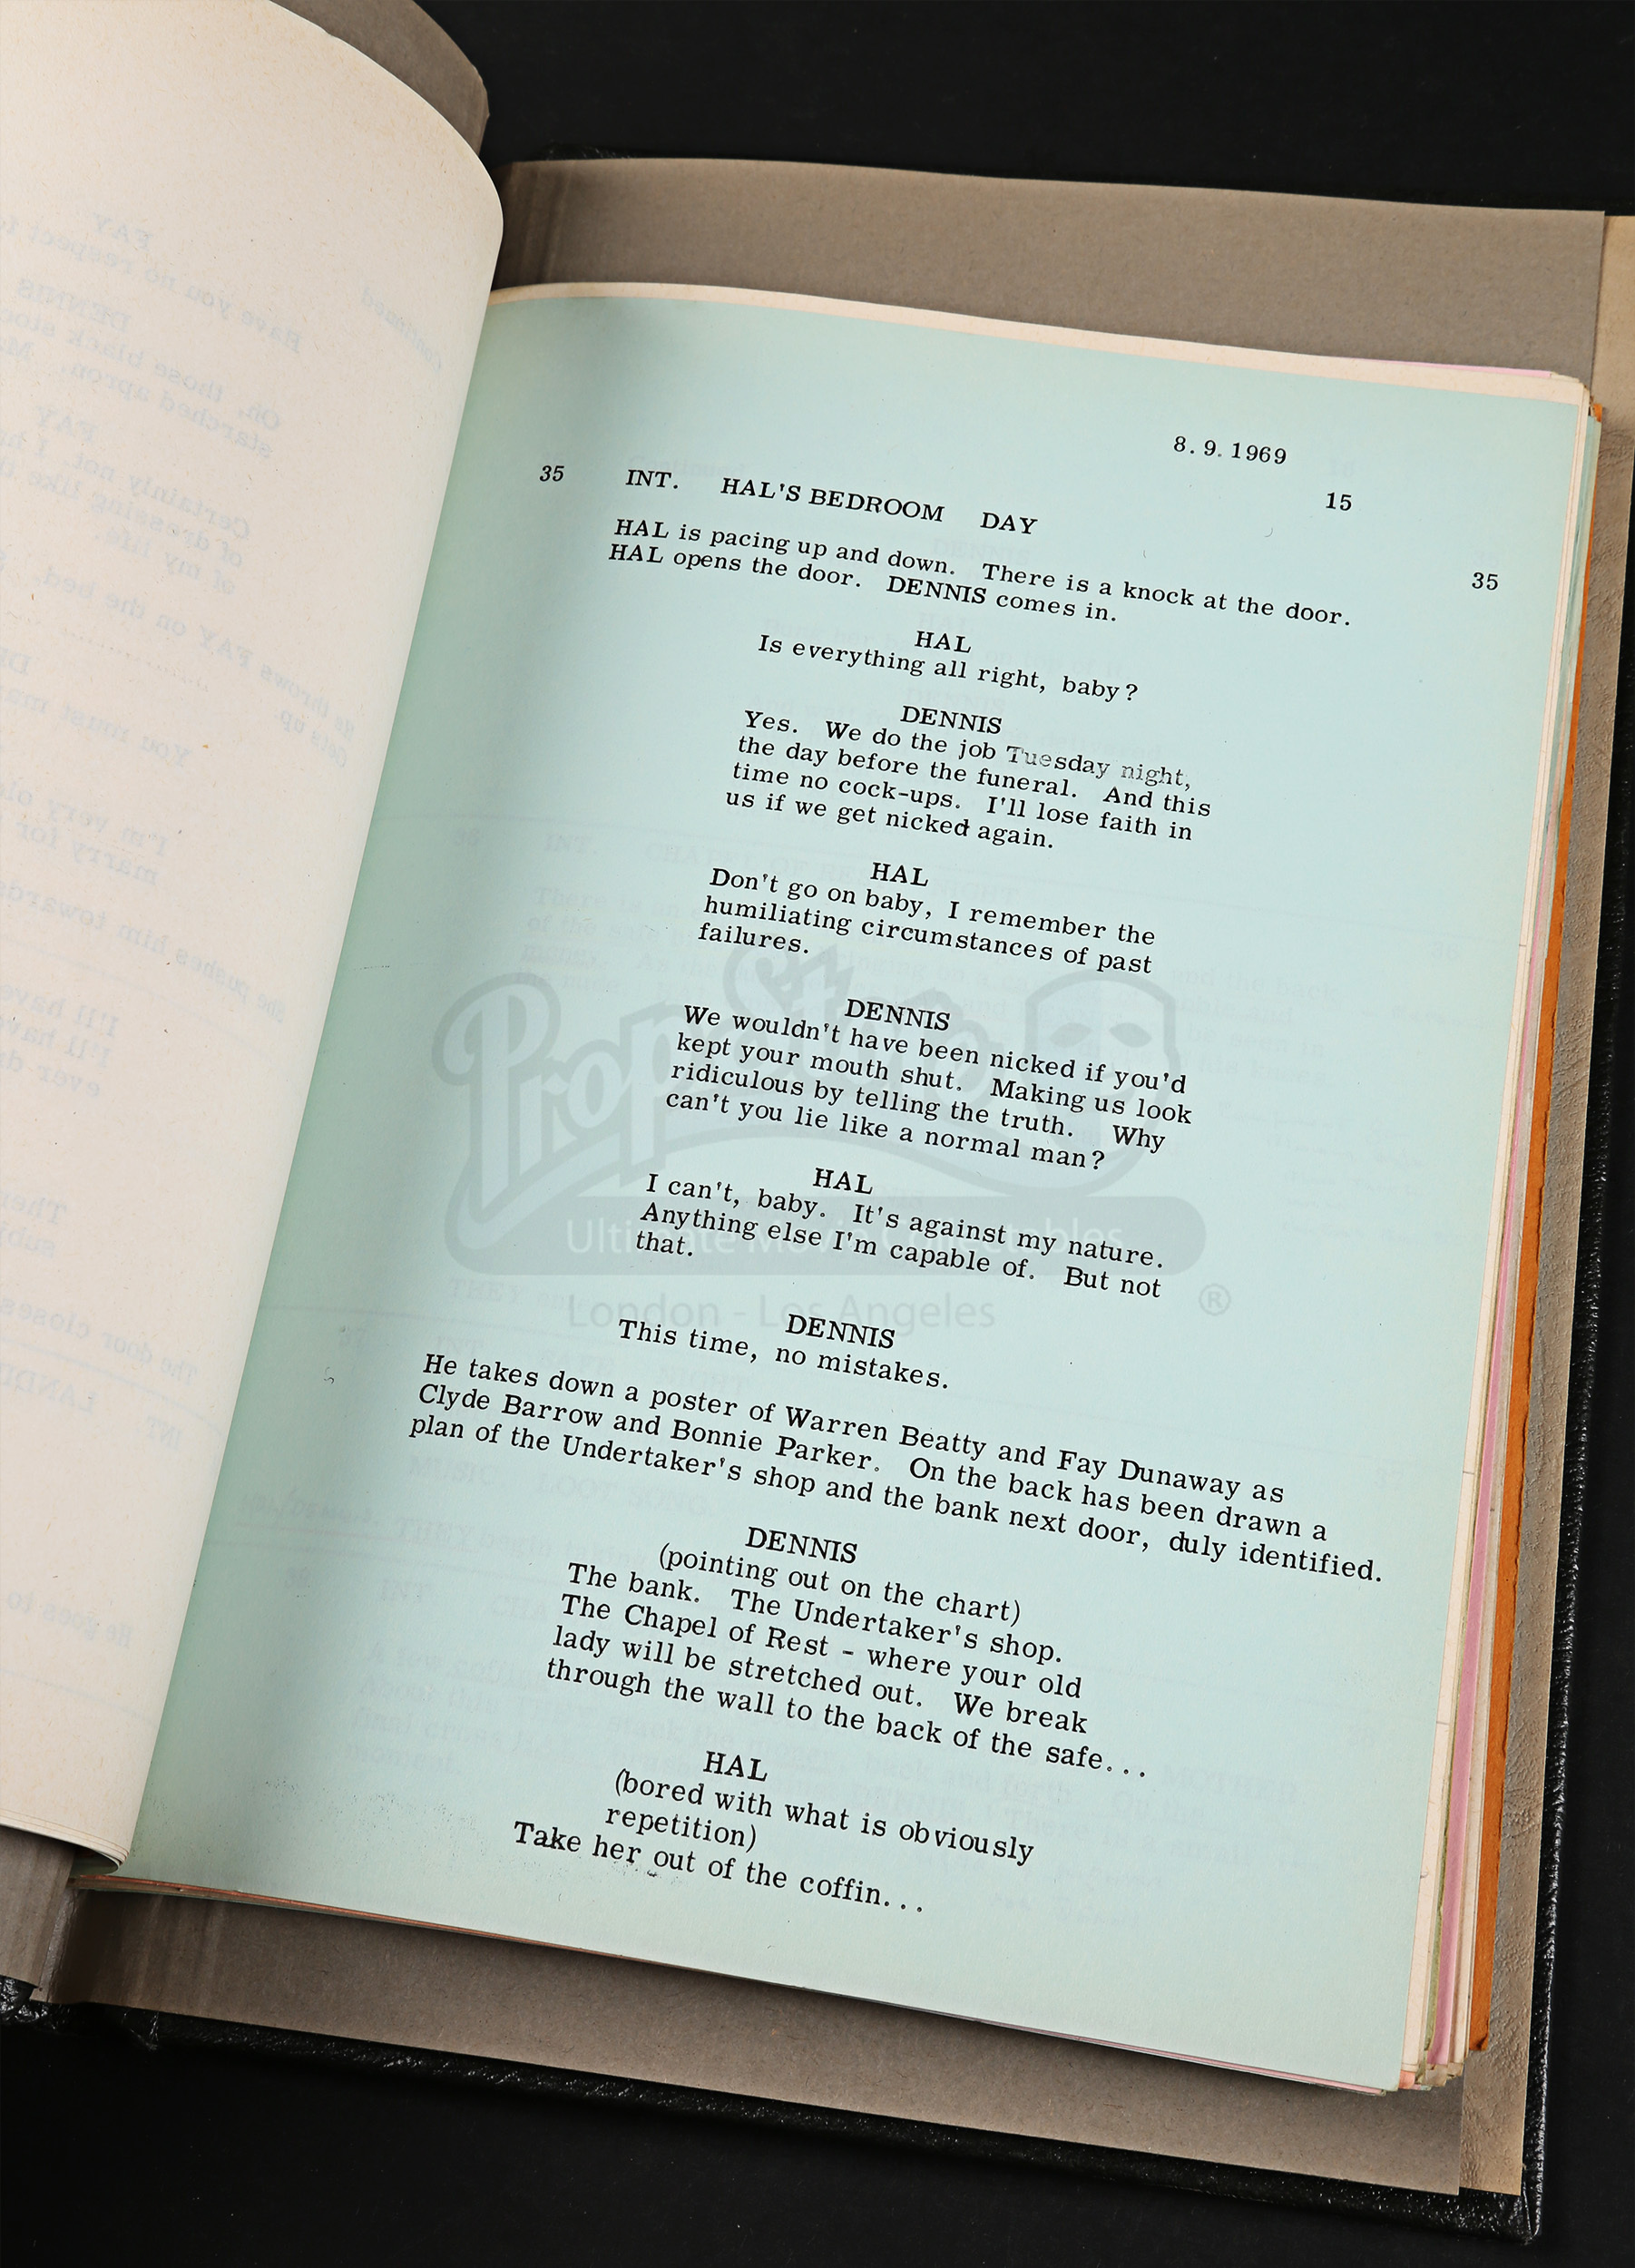 script with written notes